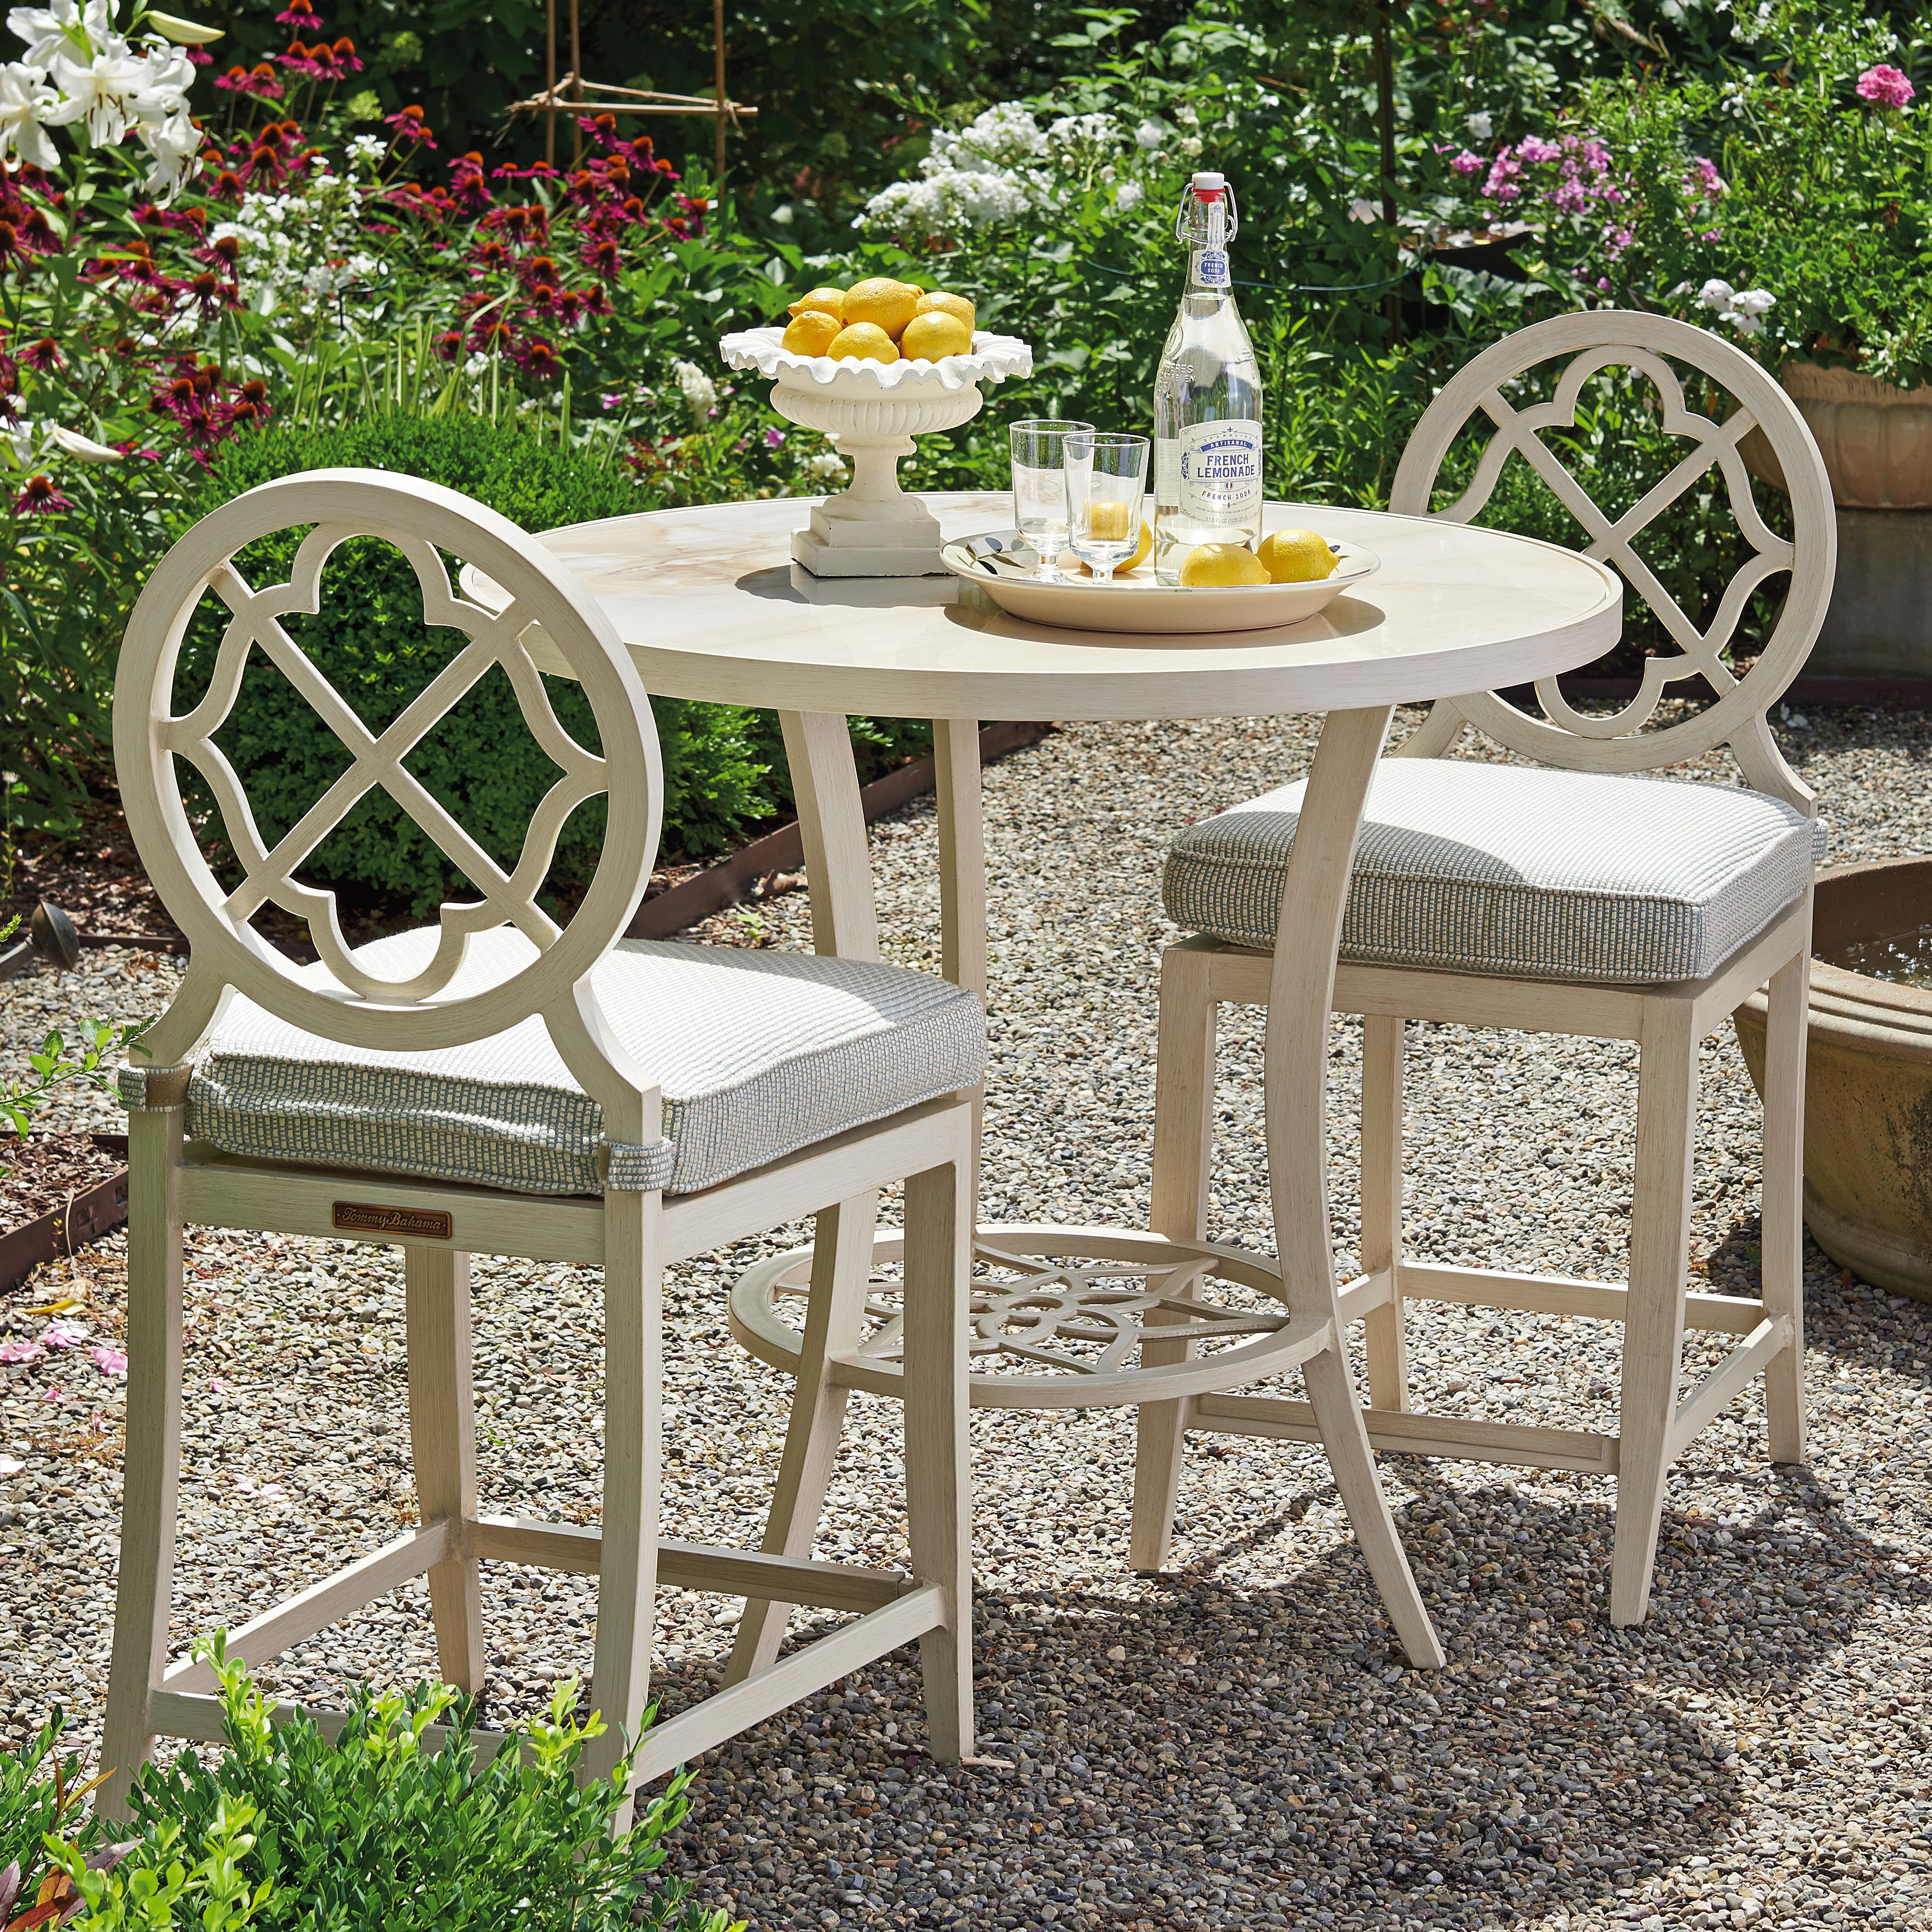 Misty Garden 3 Pc High/Low Bistro Table w/ Counter Stools by Tommy Bahama Outdoor Living at Baer's Furniture